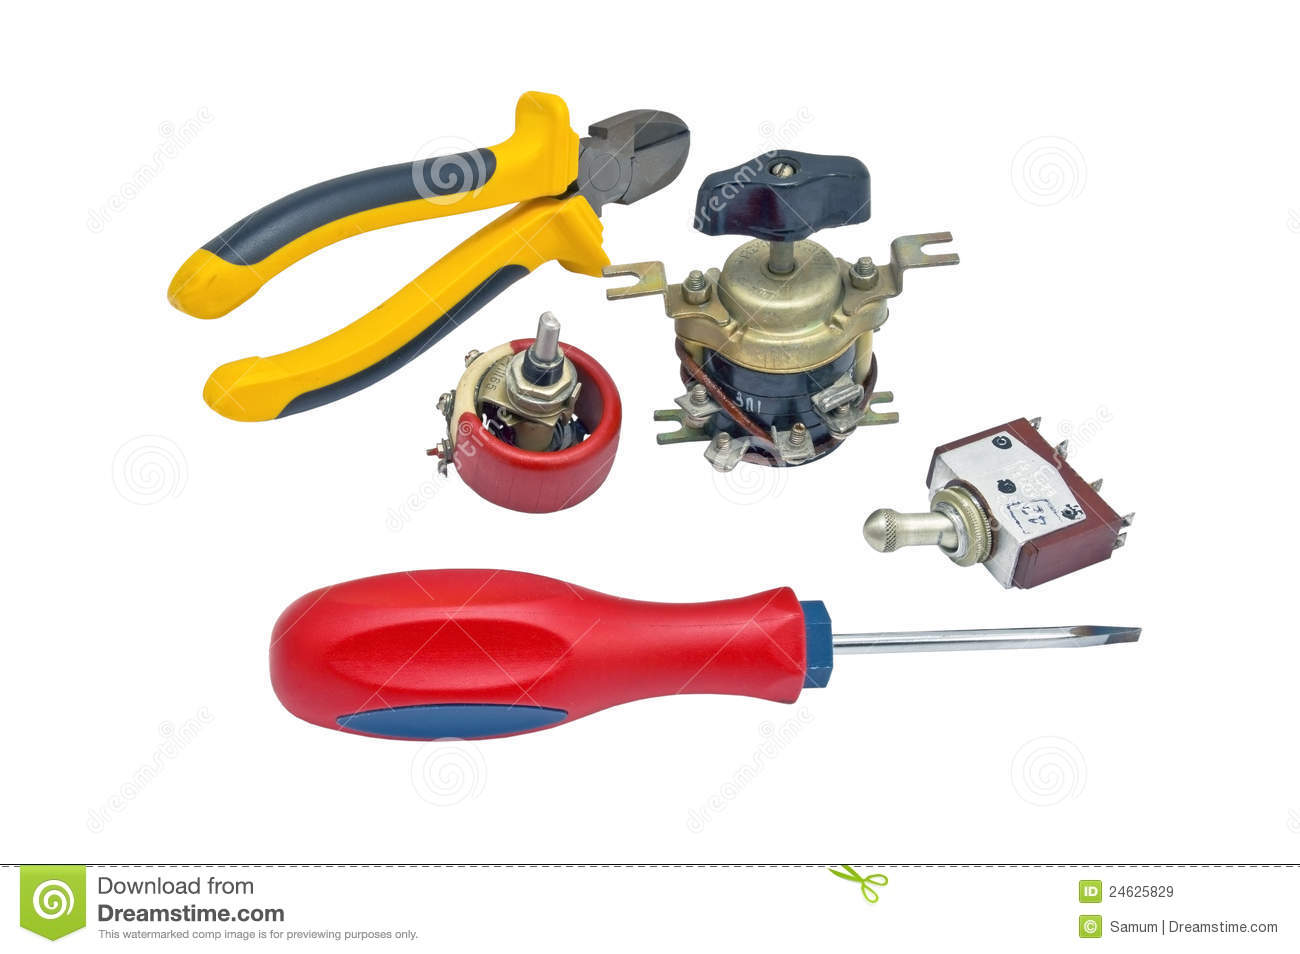 anytype electrical